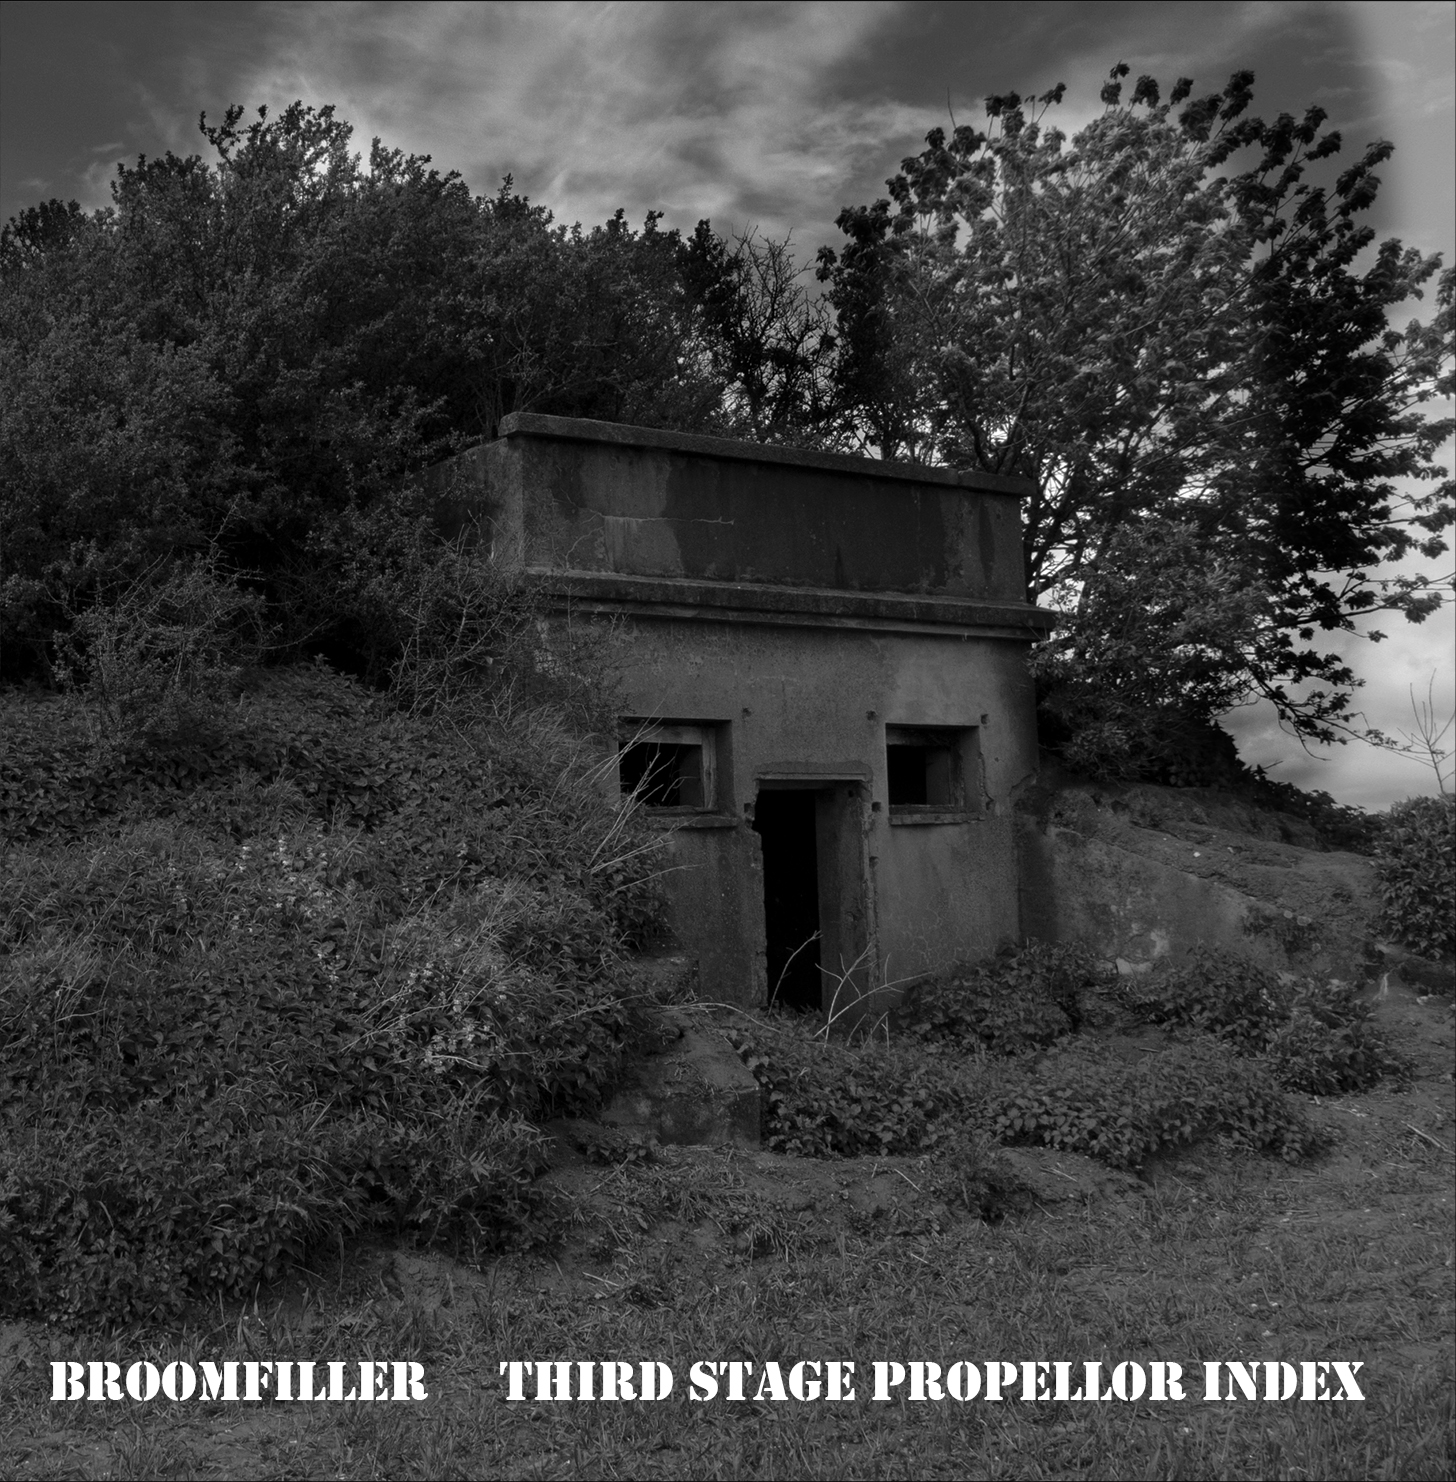 BROOMFILLER - Third Stage Propellor Index